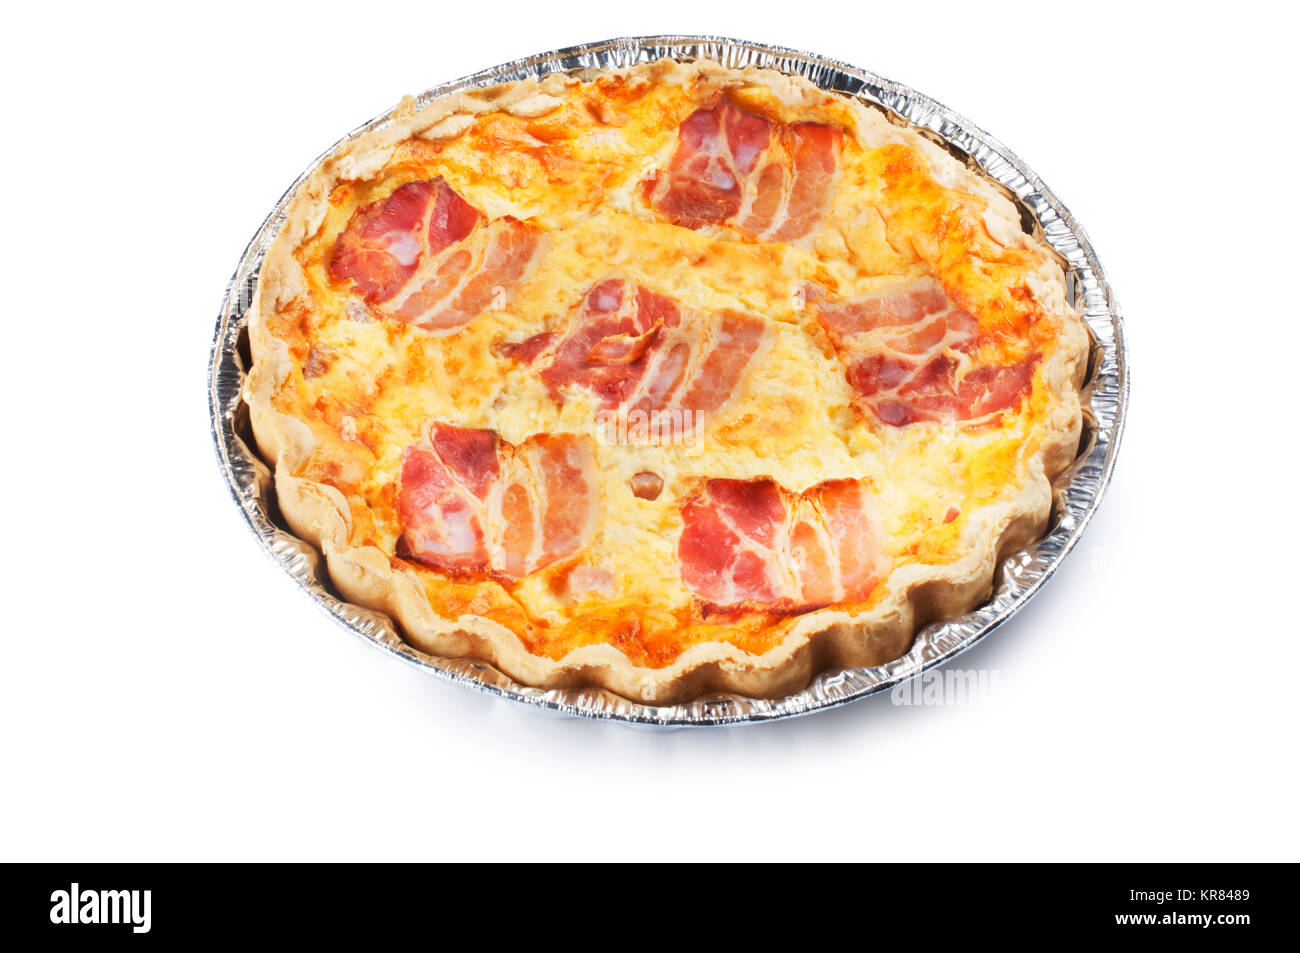 Studio shot of a single quiche isolated against a white background - John Gollop - Stock Image